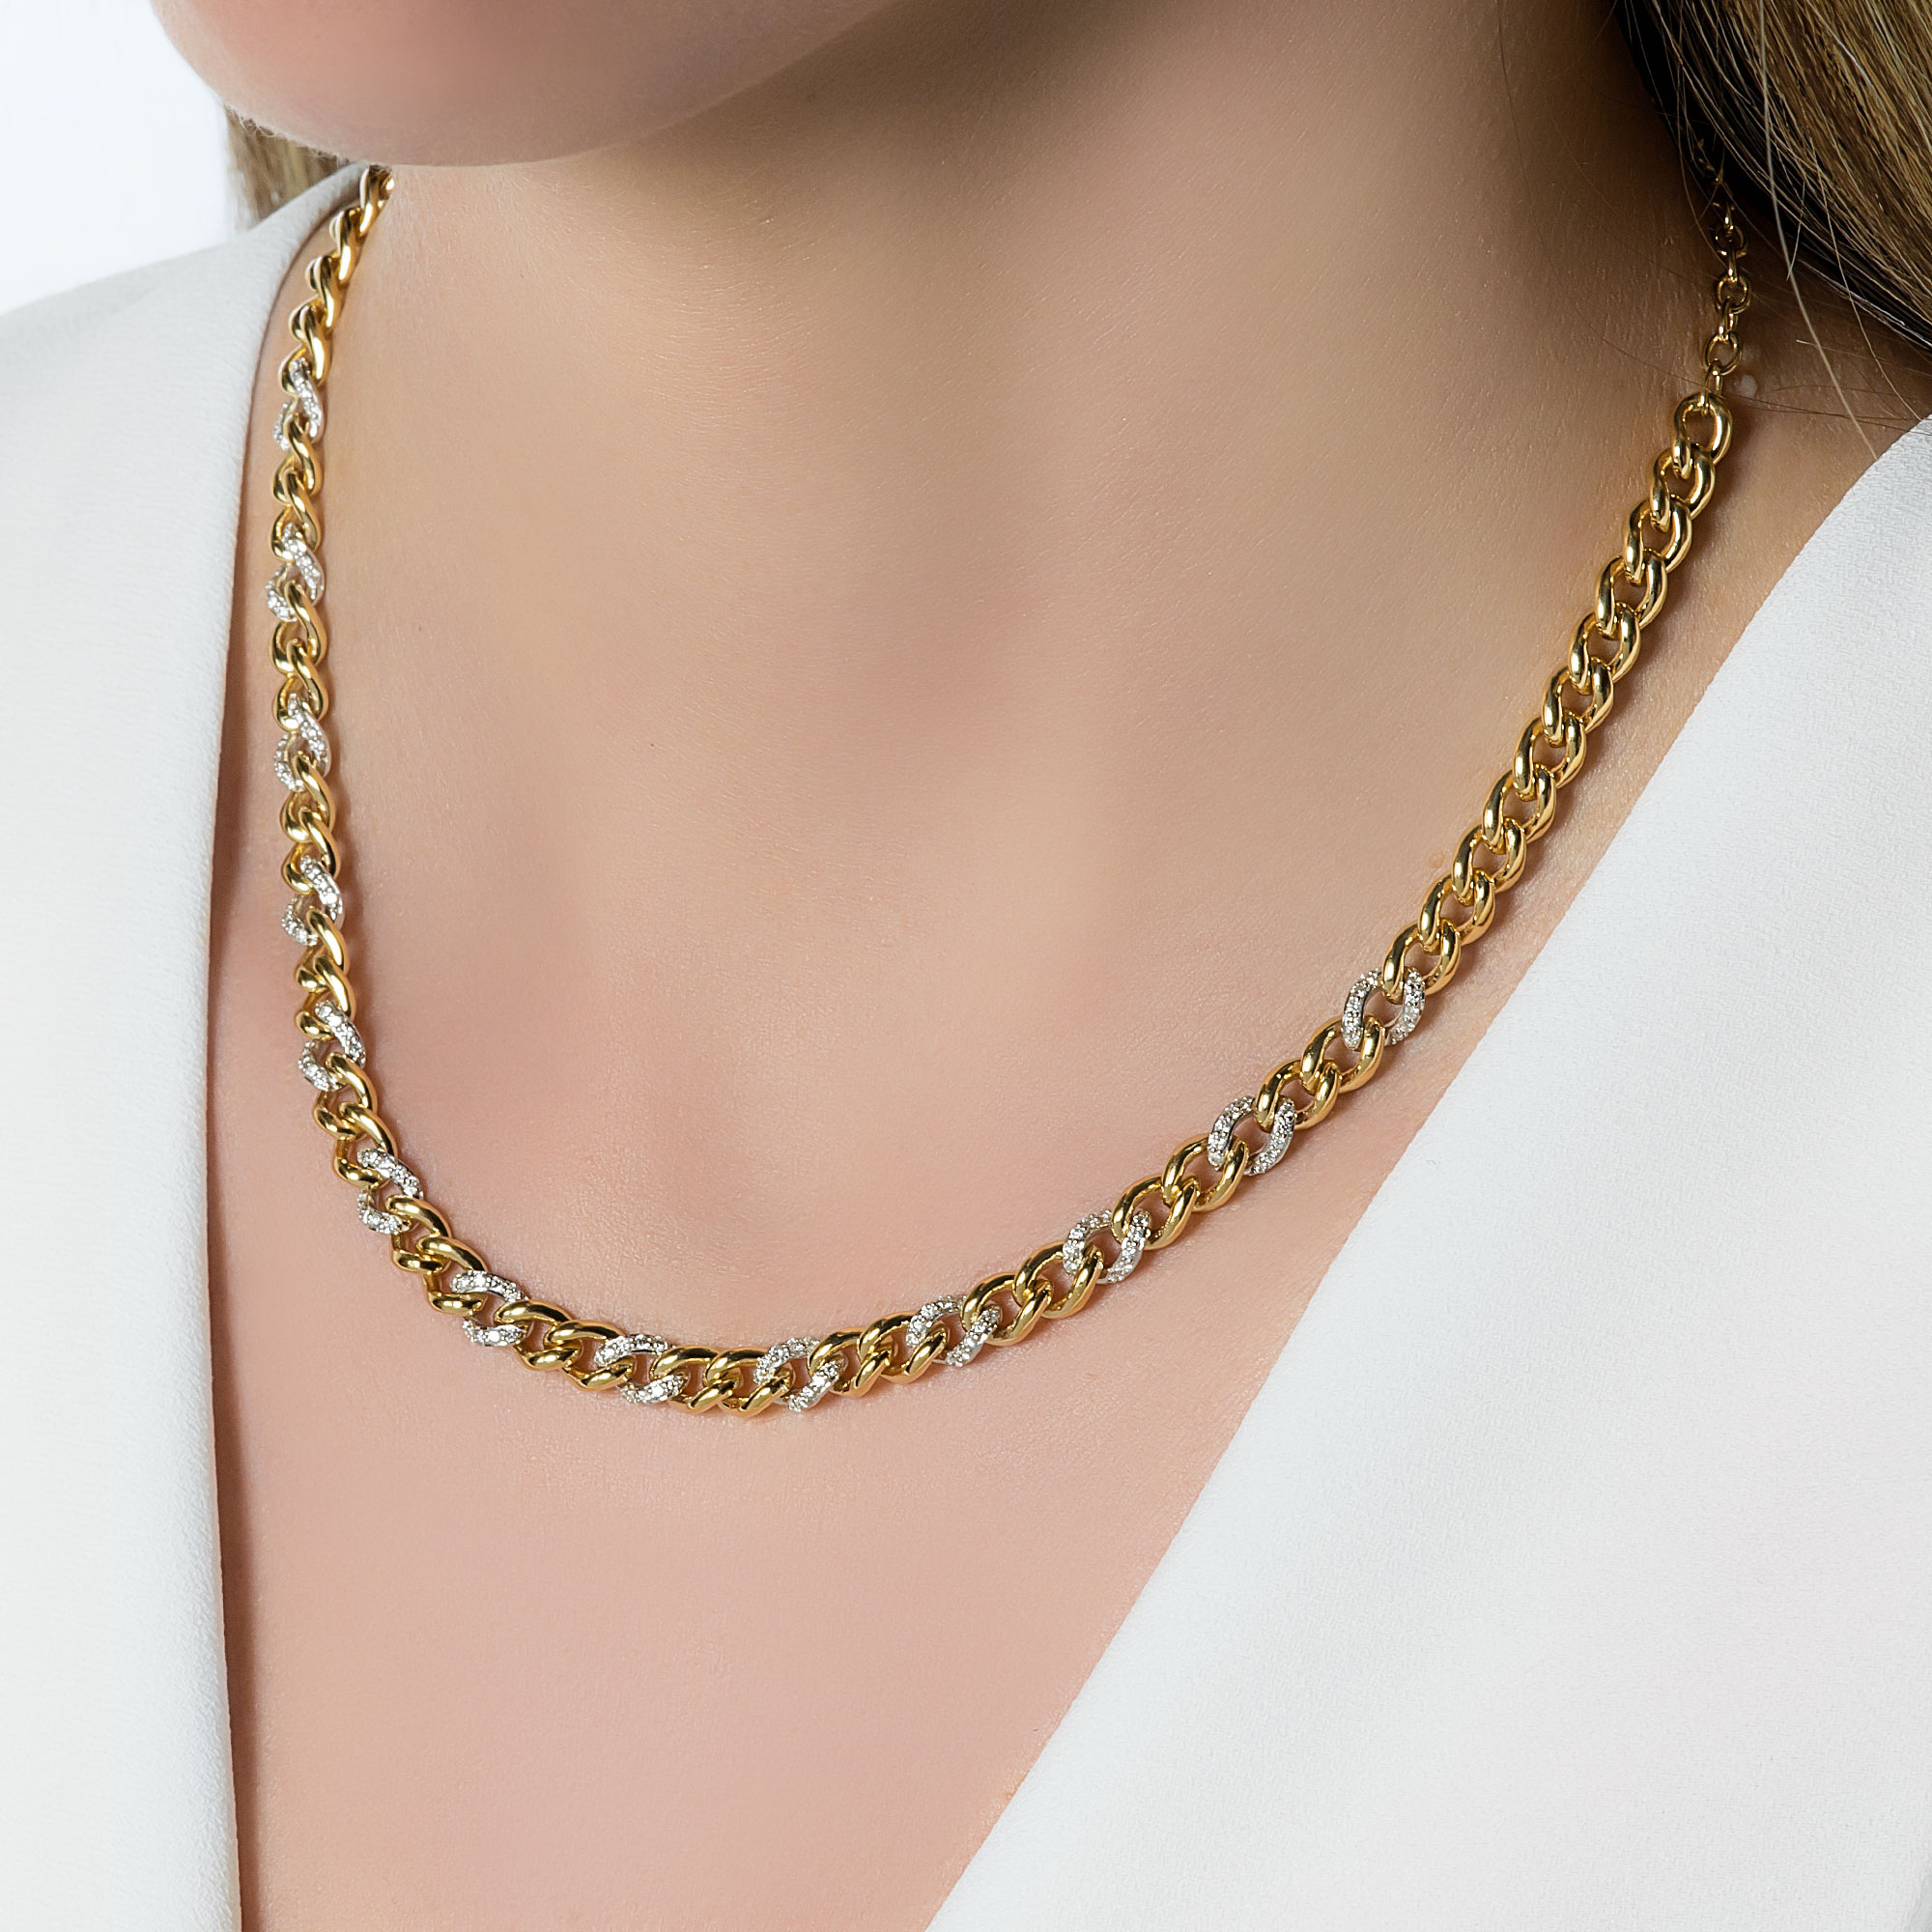 Thick gold and diamond chain